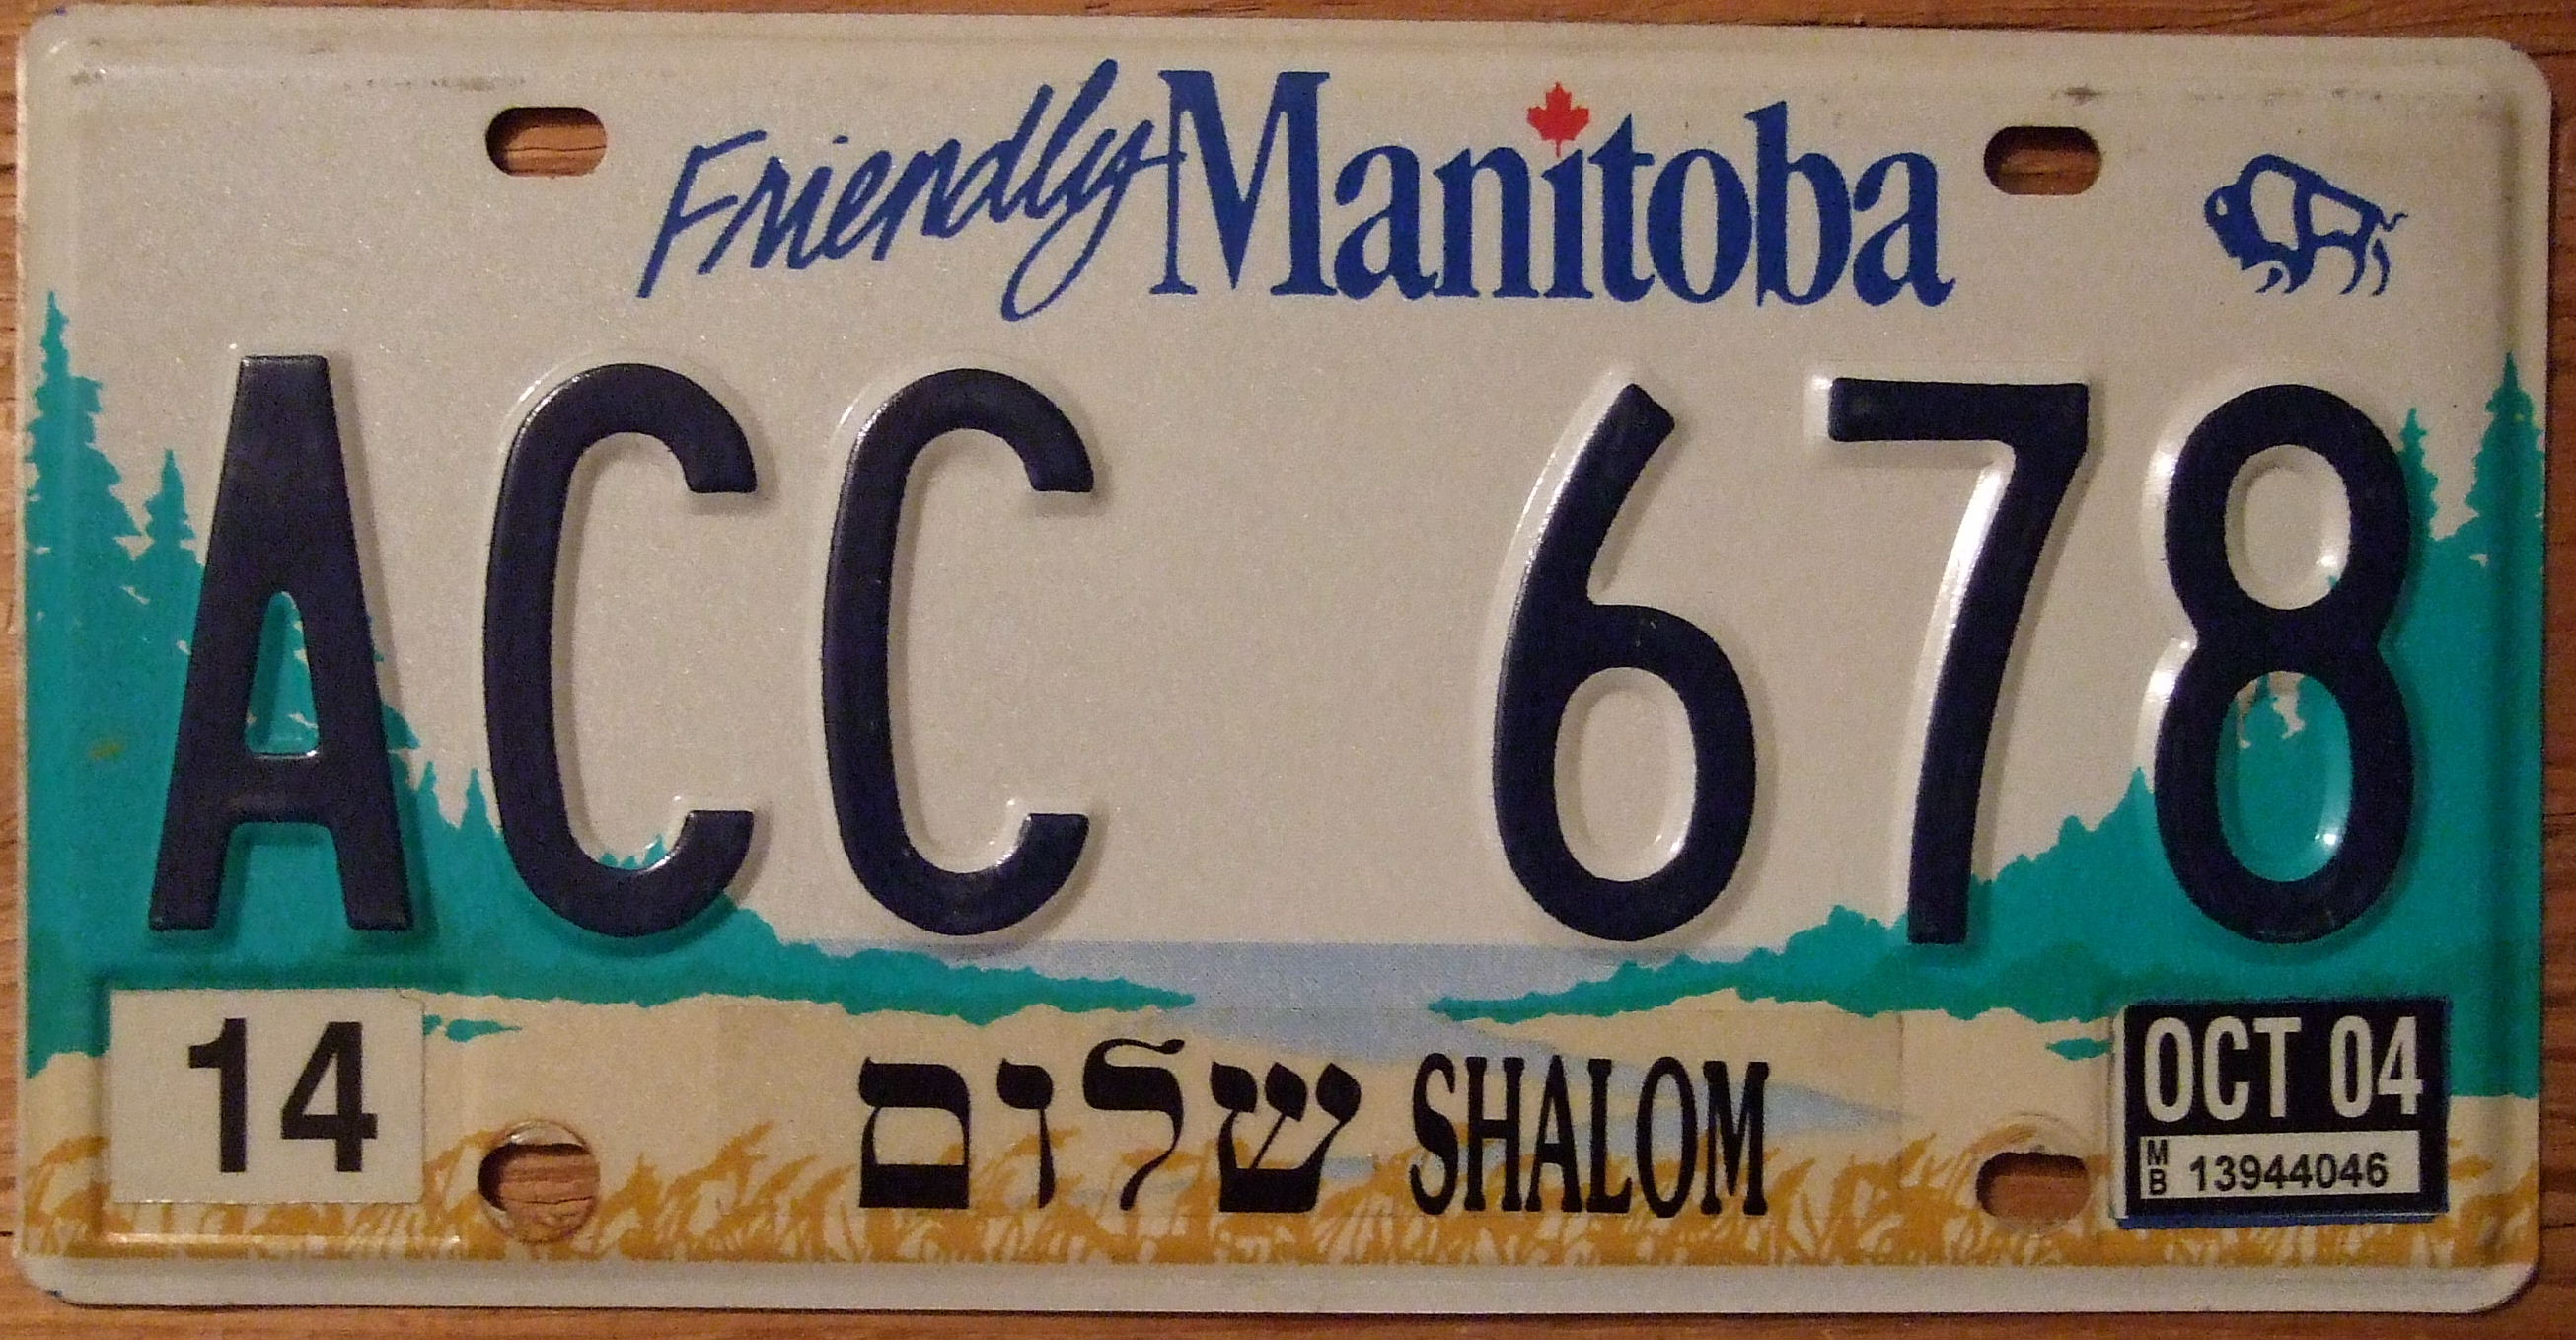 & File:Vintage Manitoba license plate with \